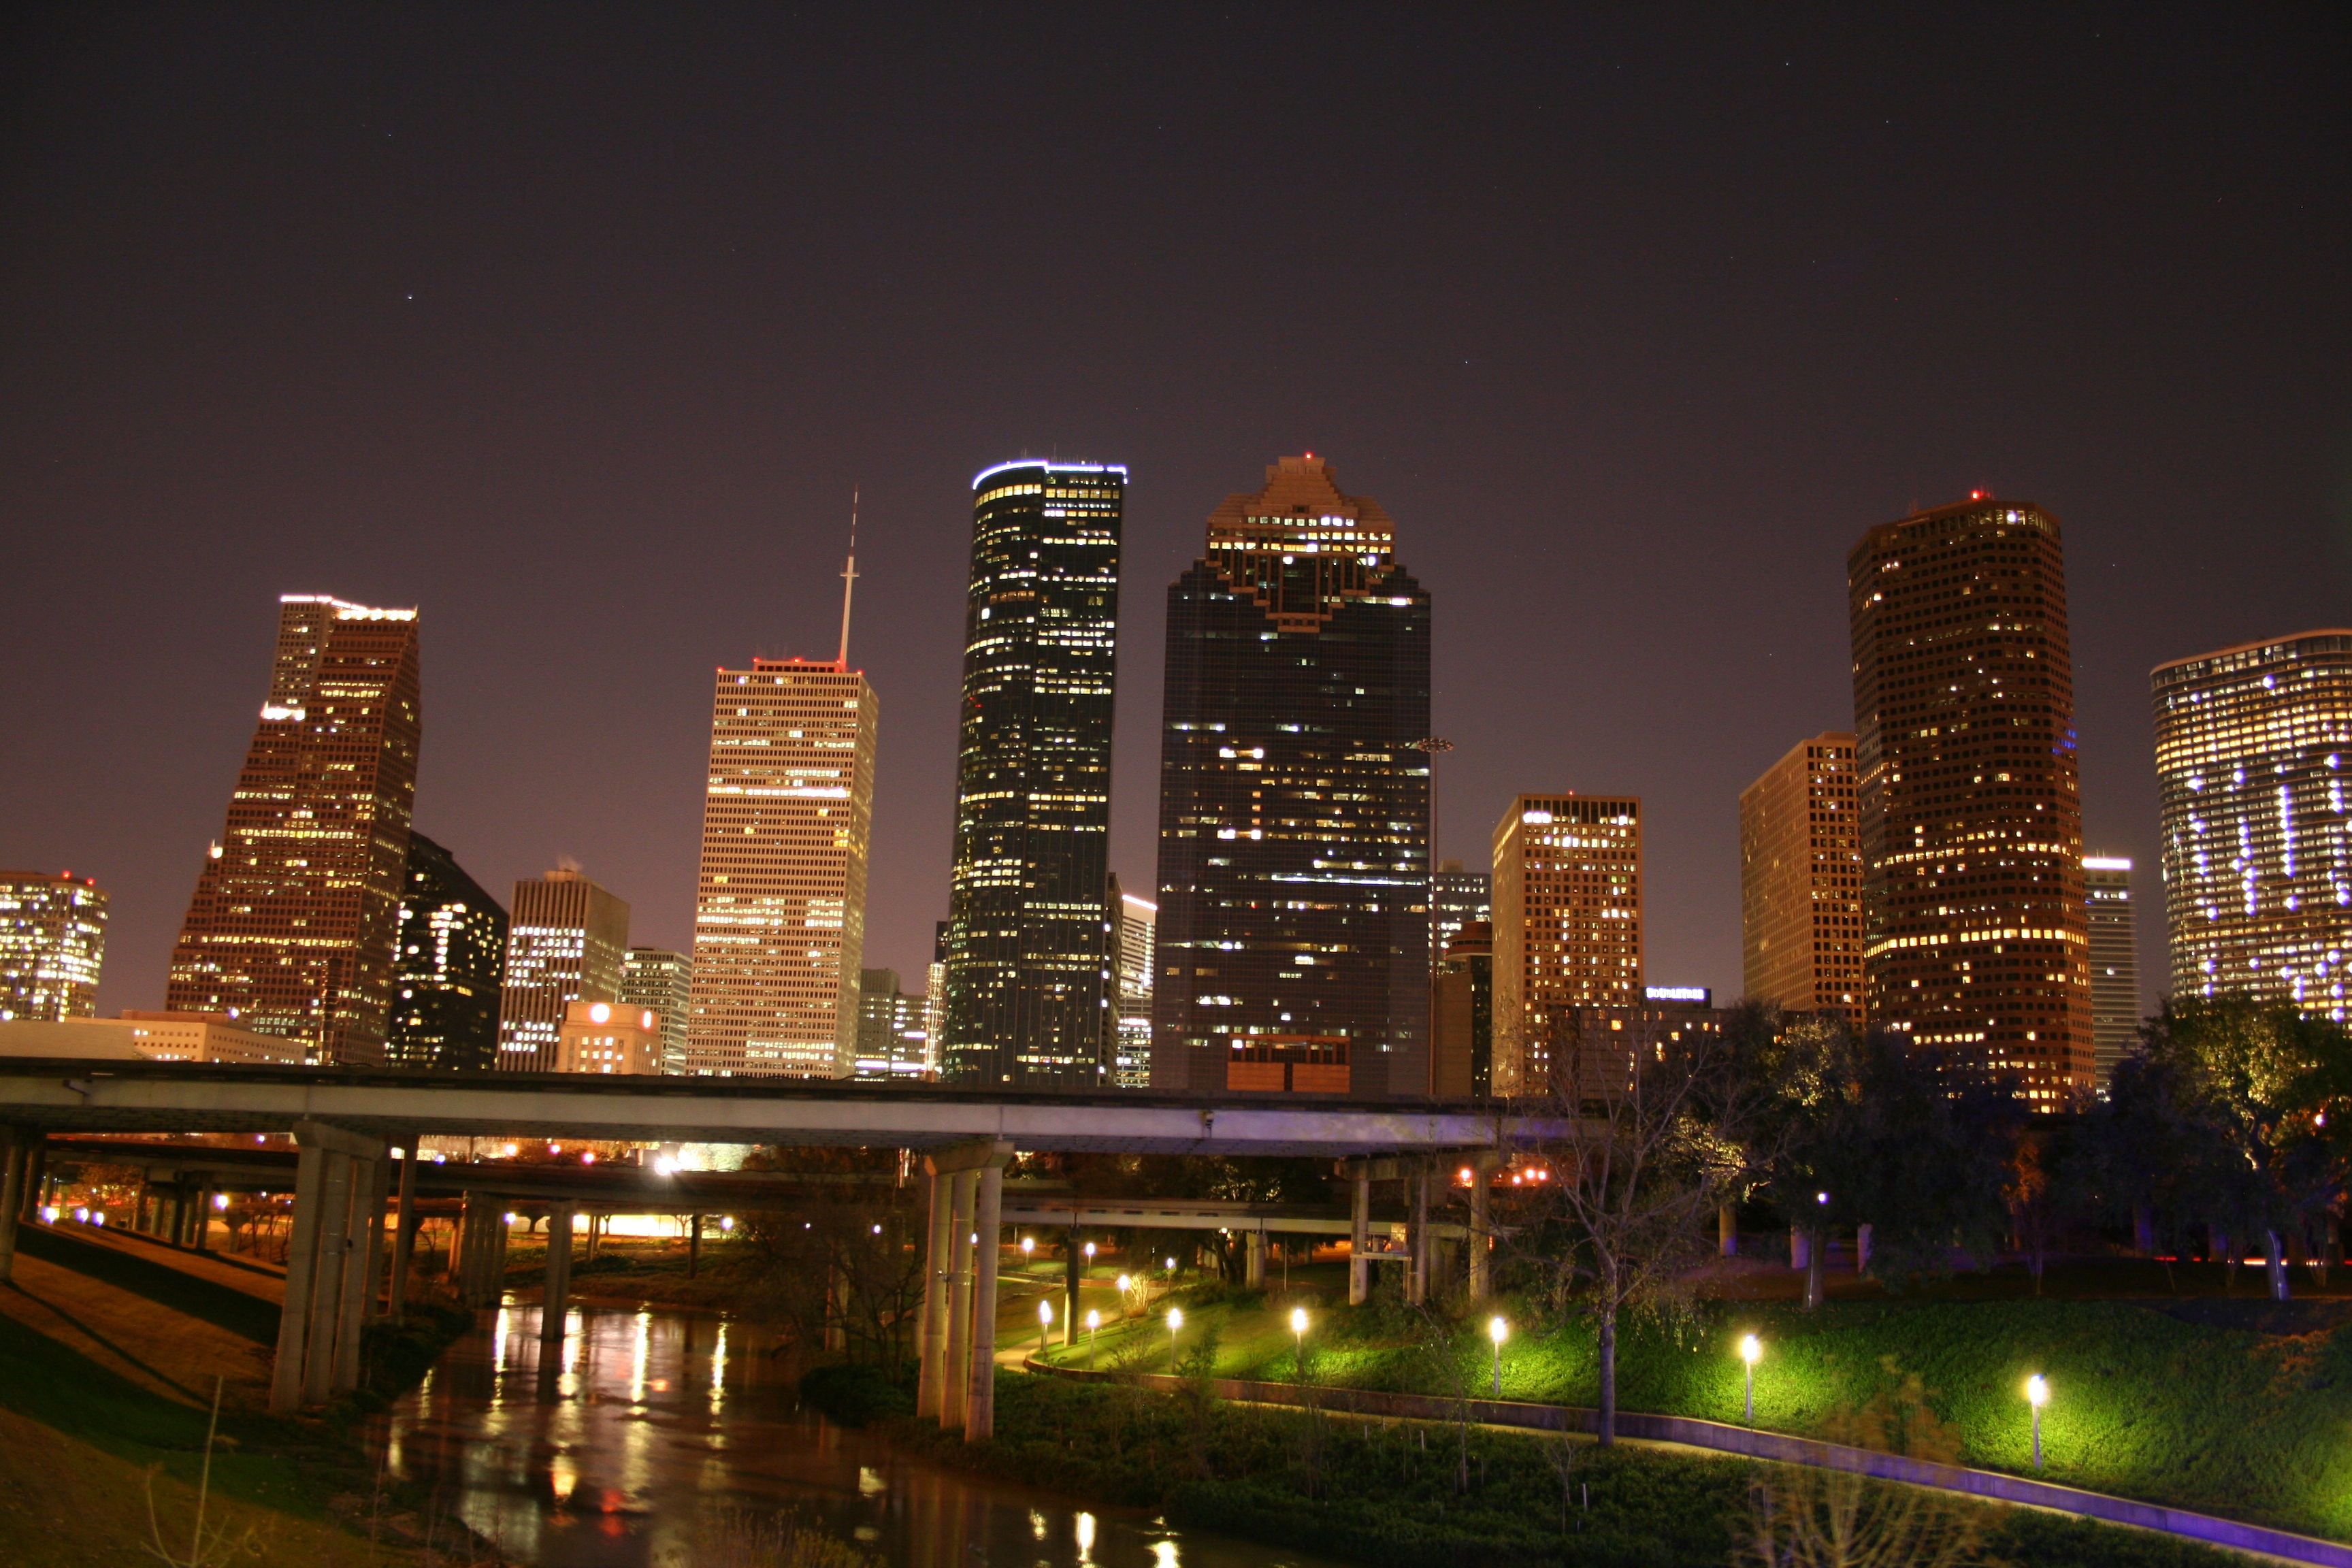 houston is the most populous city in texas and the fourth most populous city in the united states located in southeast texas near the gulf of mexico - Lighting Stores In Houston Tx